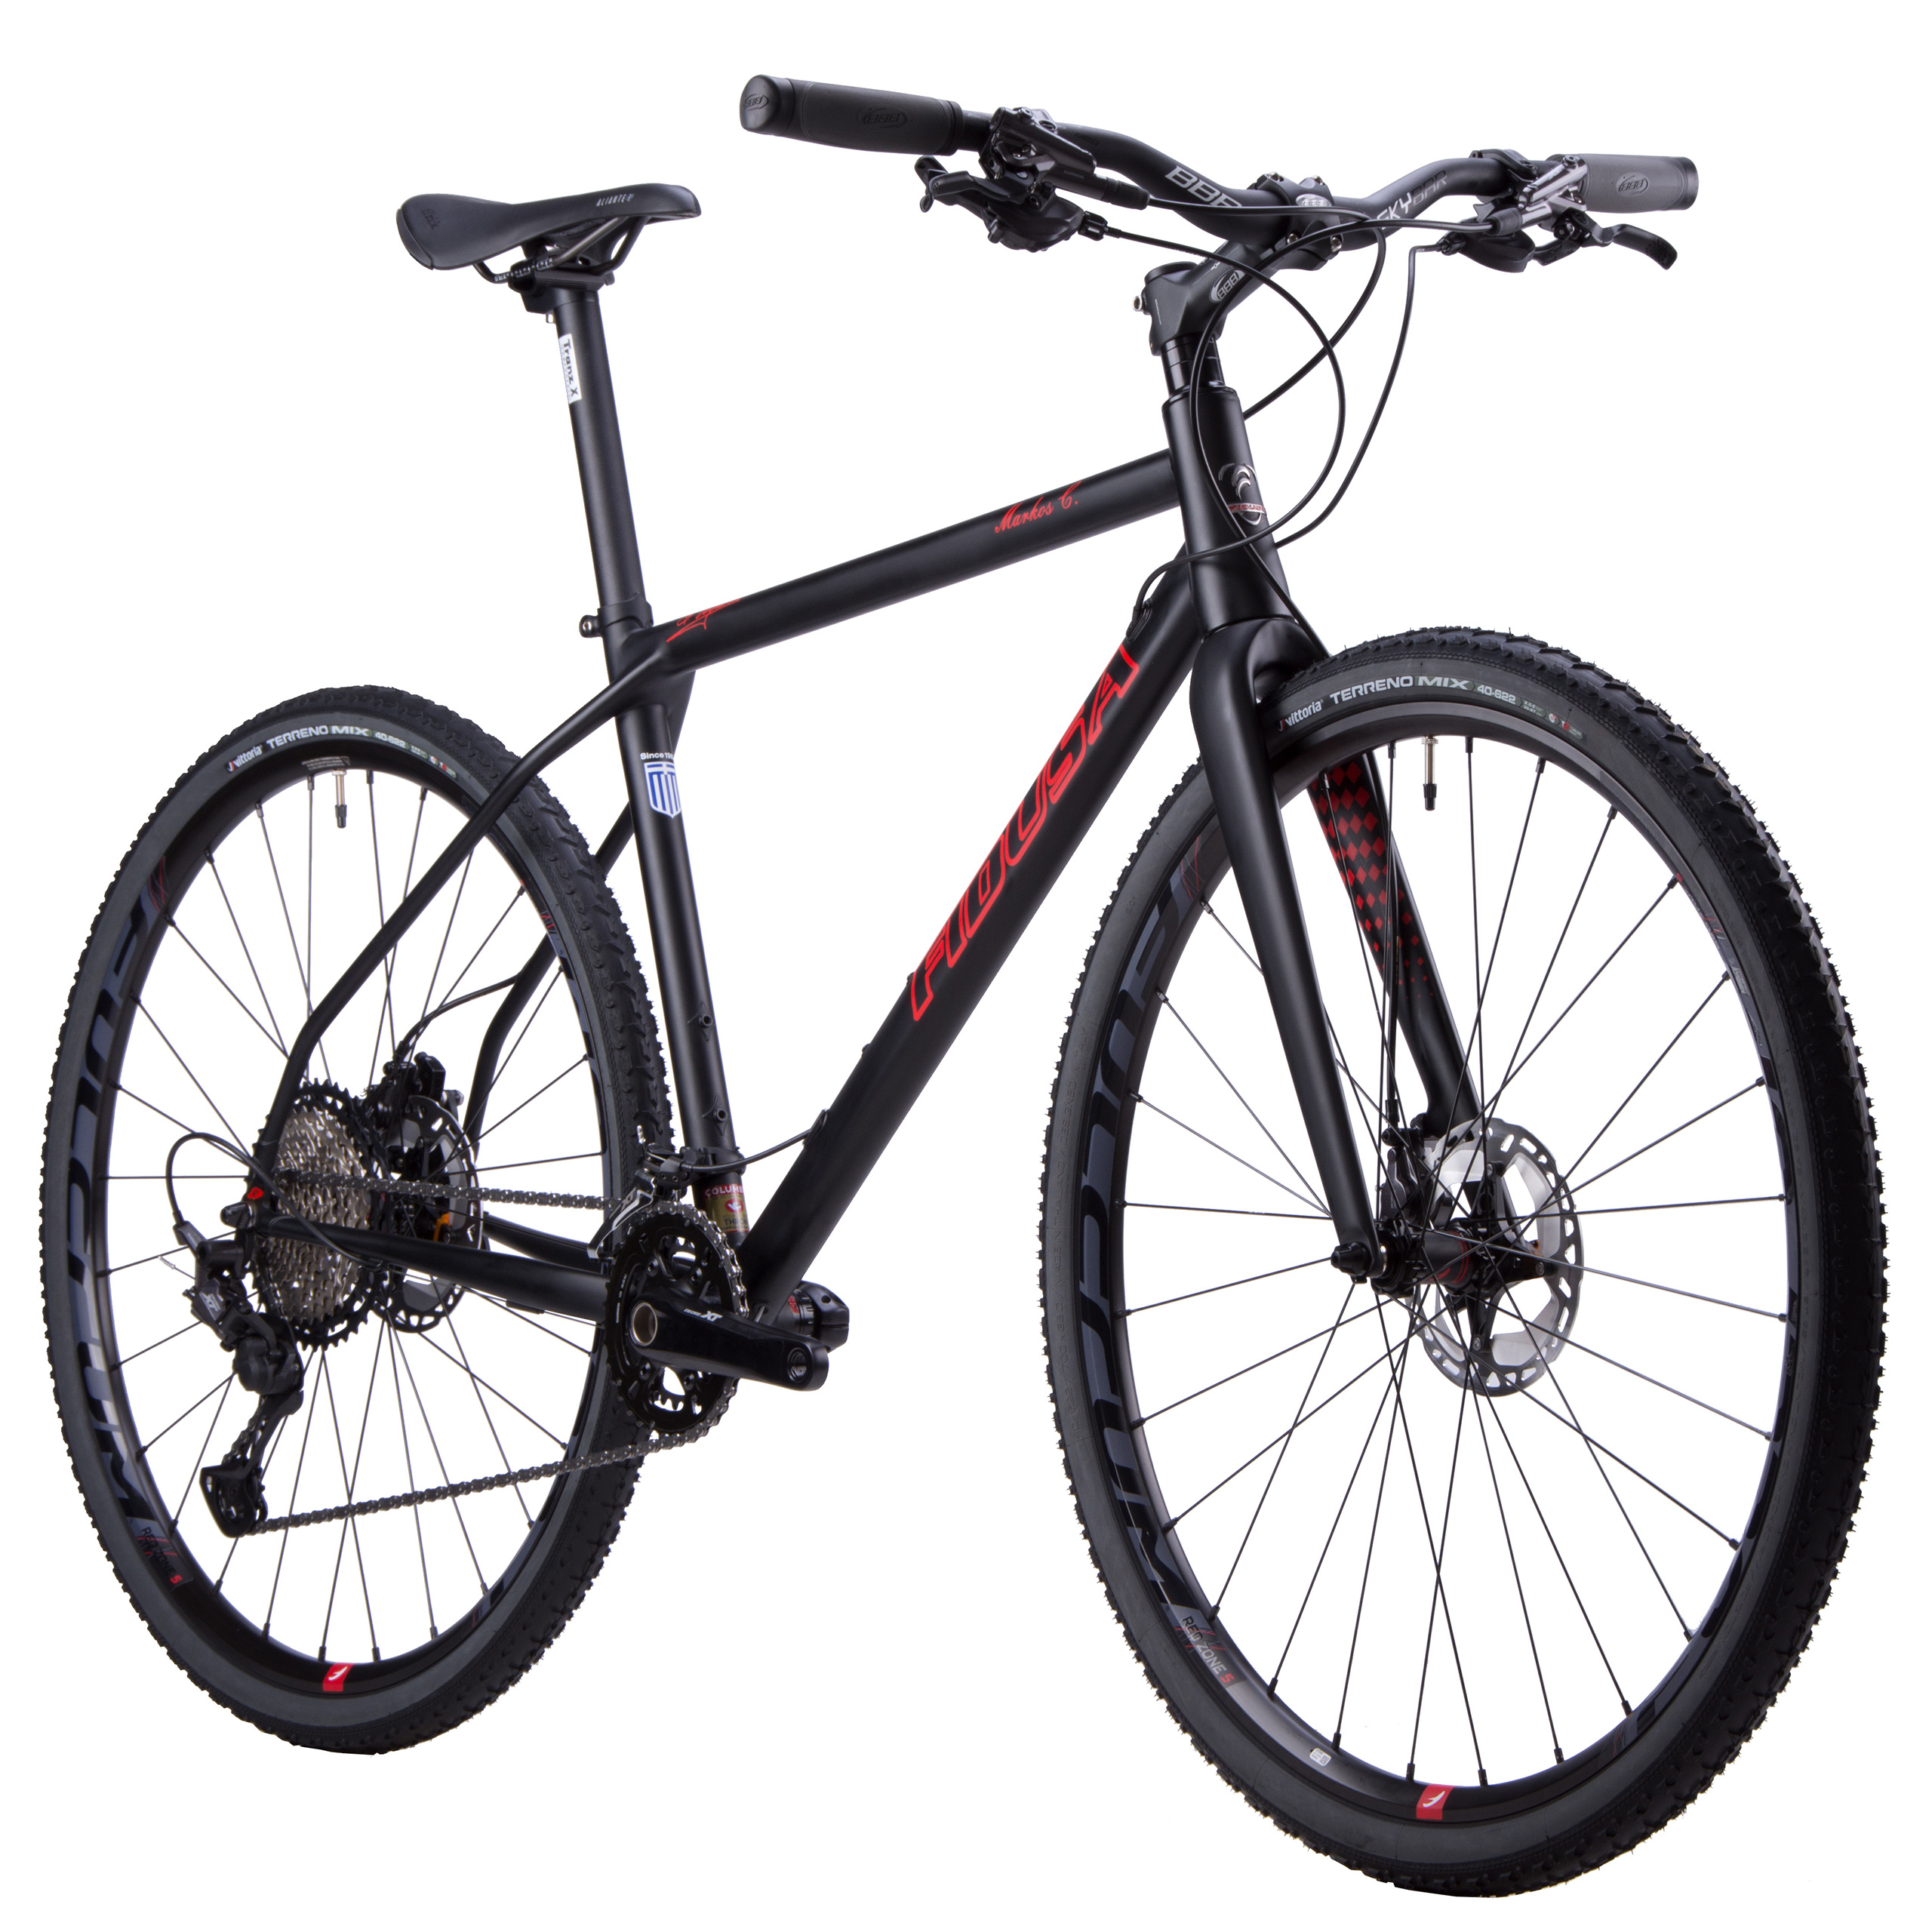 Fidusa-Cr-Mo-trekking-black-red-bike-front Our Bicycles